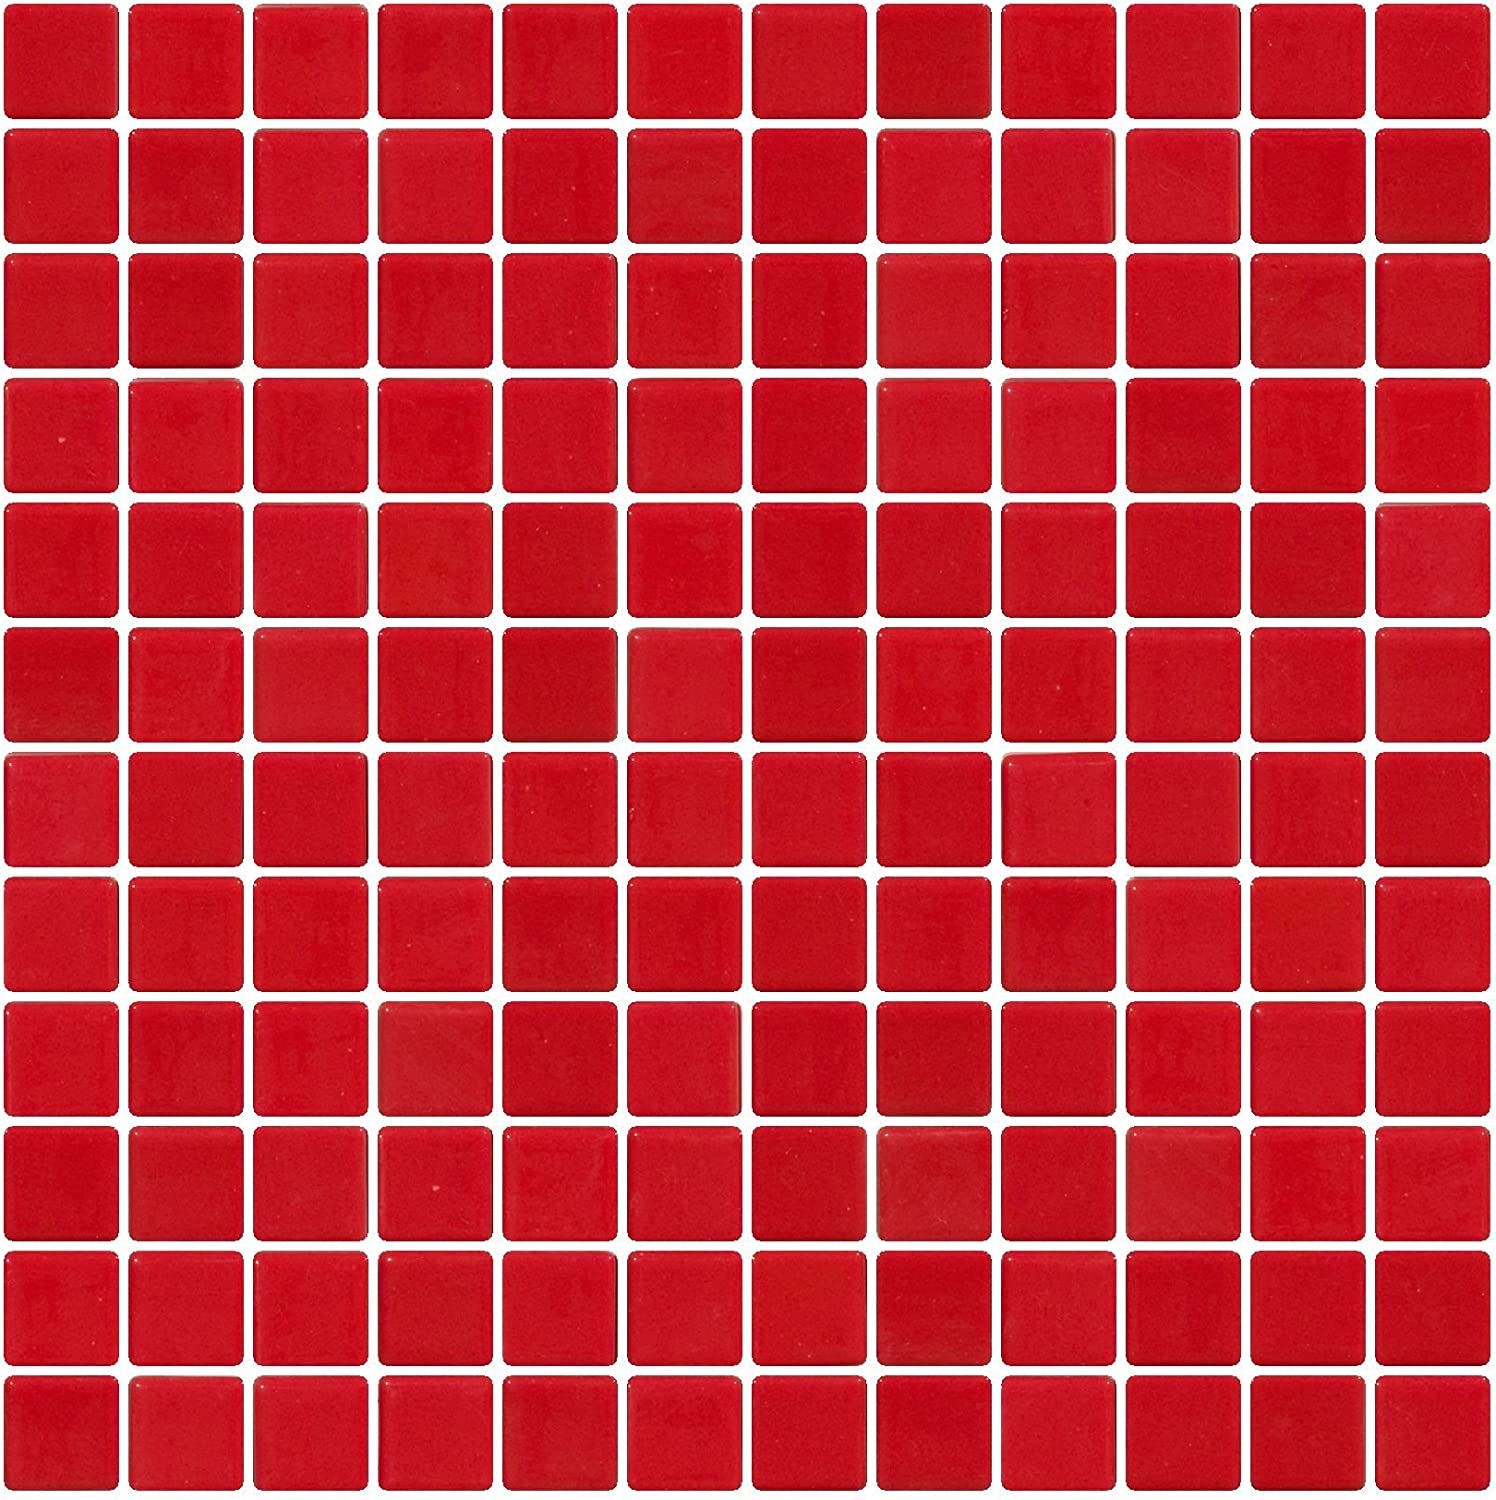 1 Inch Red Recycled Glass Tile Susan Jablon Mosaics